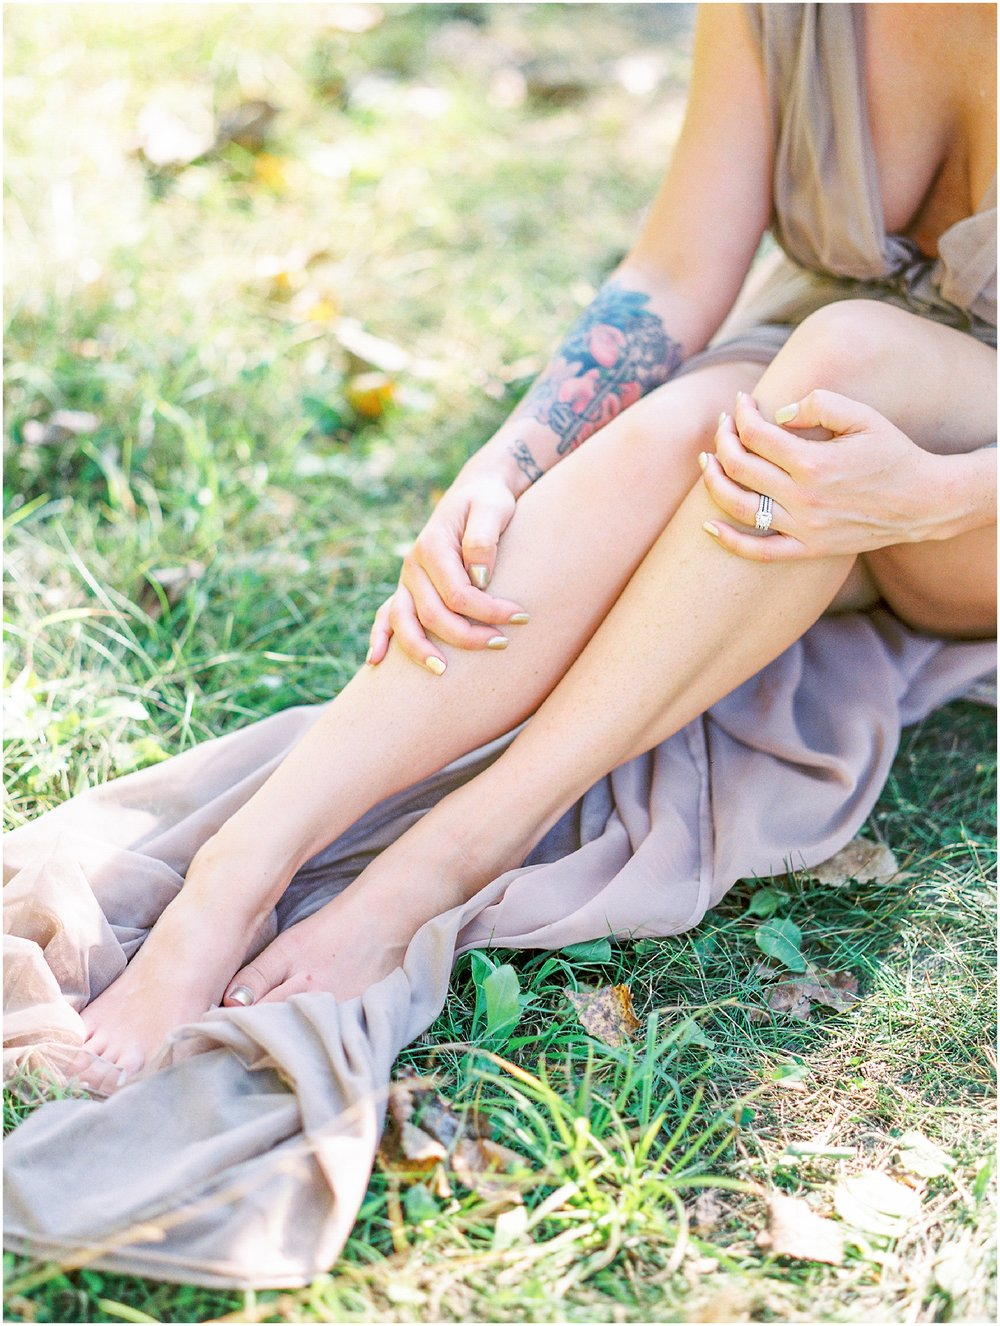 Natural Outdoor Boudoir Session at the Prairie- Lisa Silva Photography- Jacksonville, Florida Fine Art Film Wedding Photography_0038.jpg